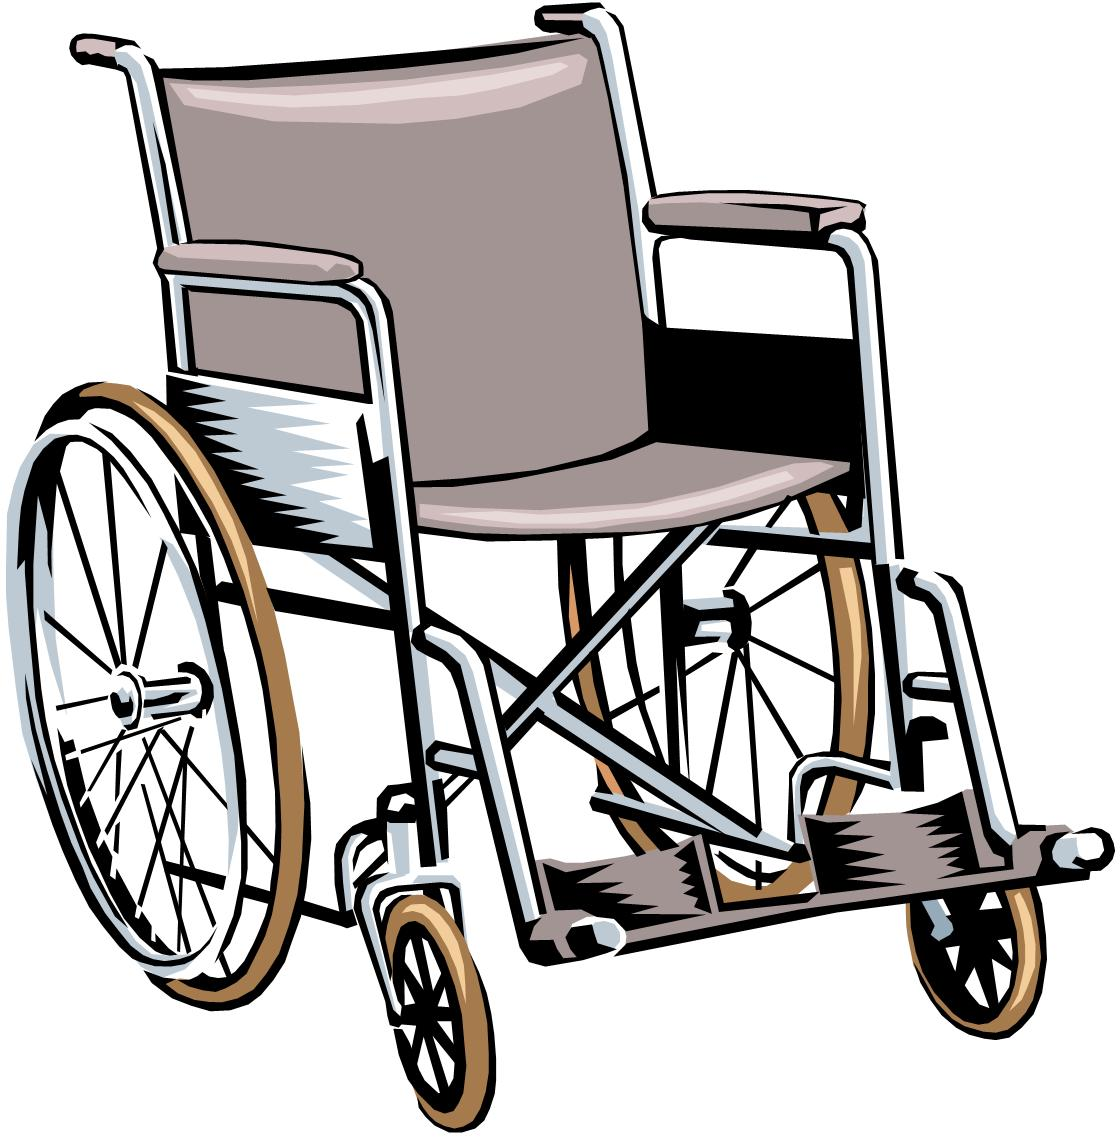 Wheelchair Clipart Free.